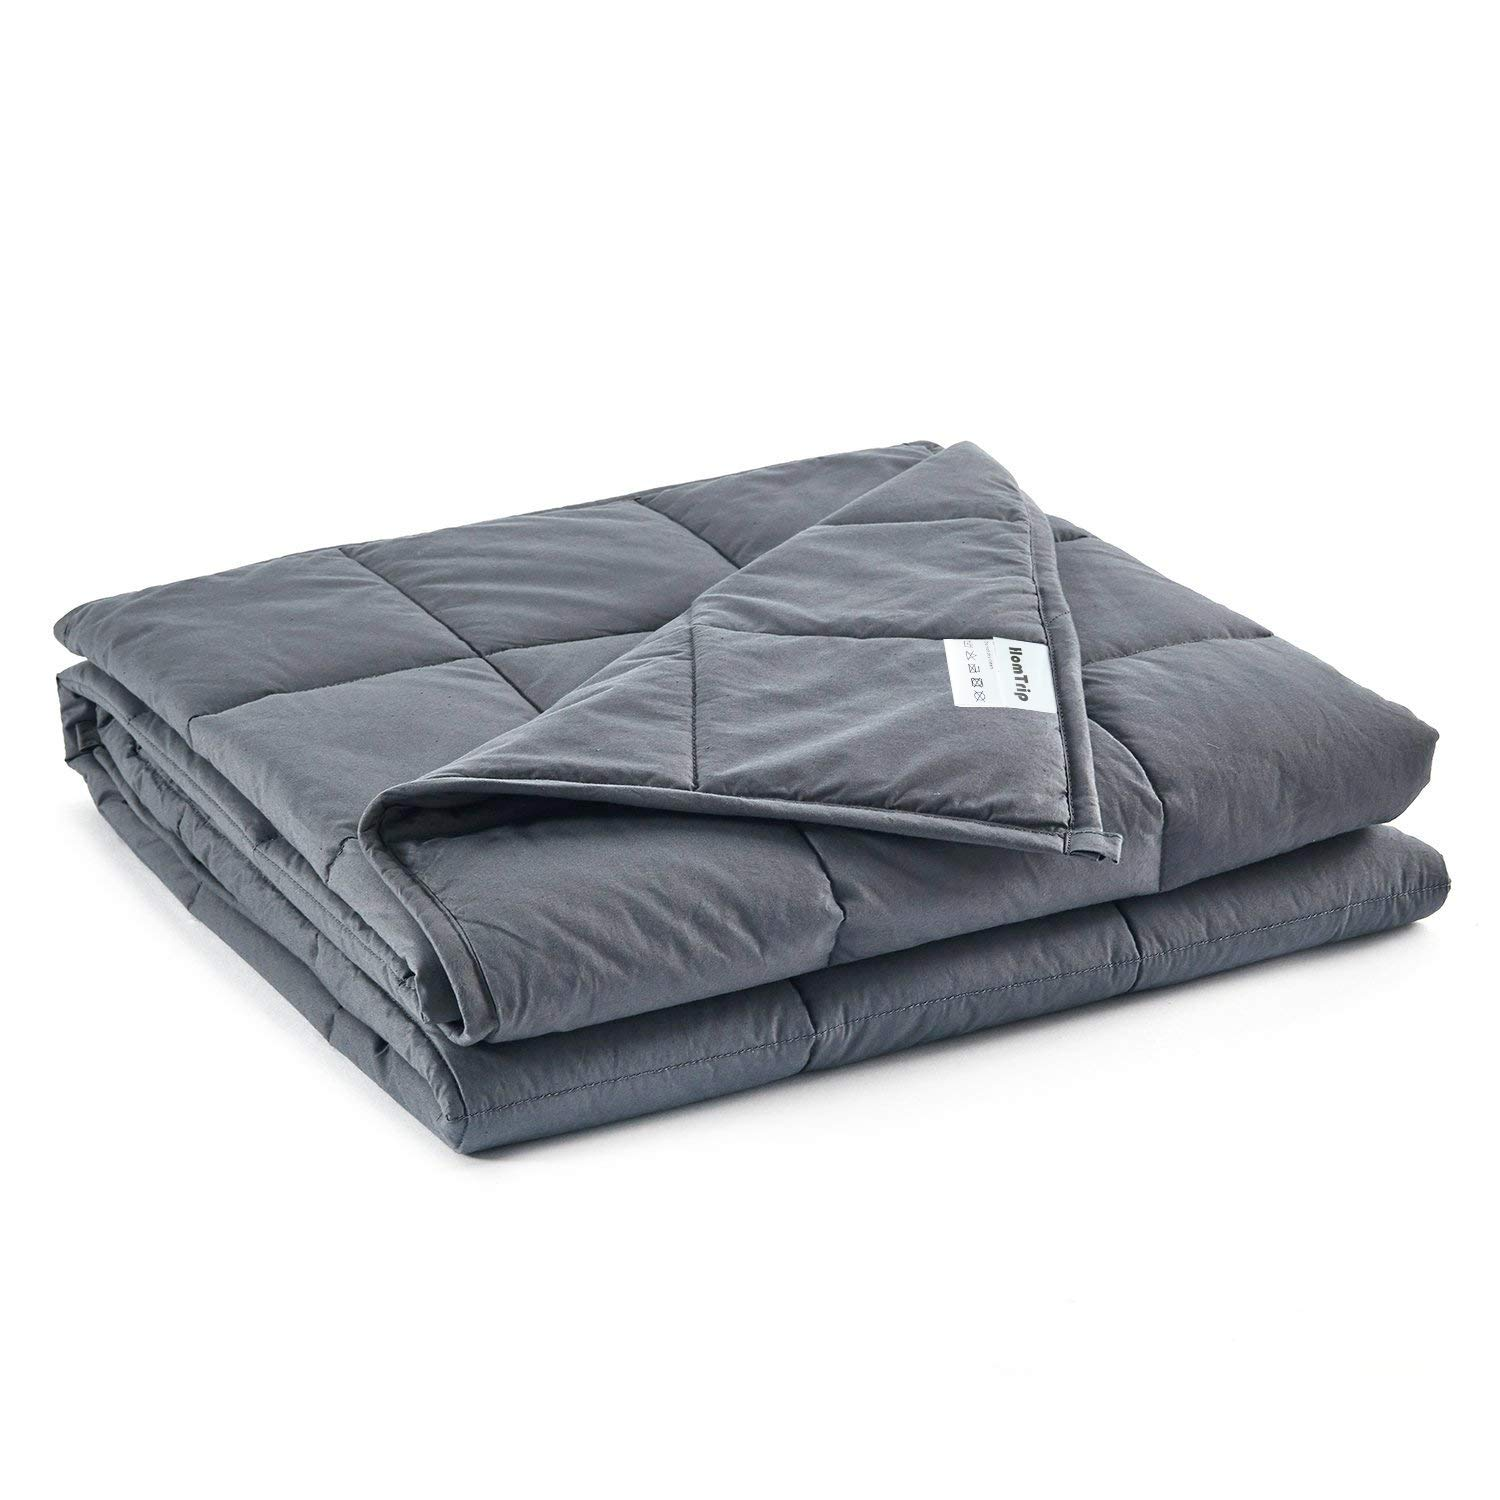 Weighted Blanket 7lbs 40''x60'' - Heavy Blanket with 100% Cotton and Glass Beads, Ideal for Youth & Kids Between 50 to 80 lbs